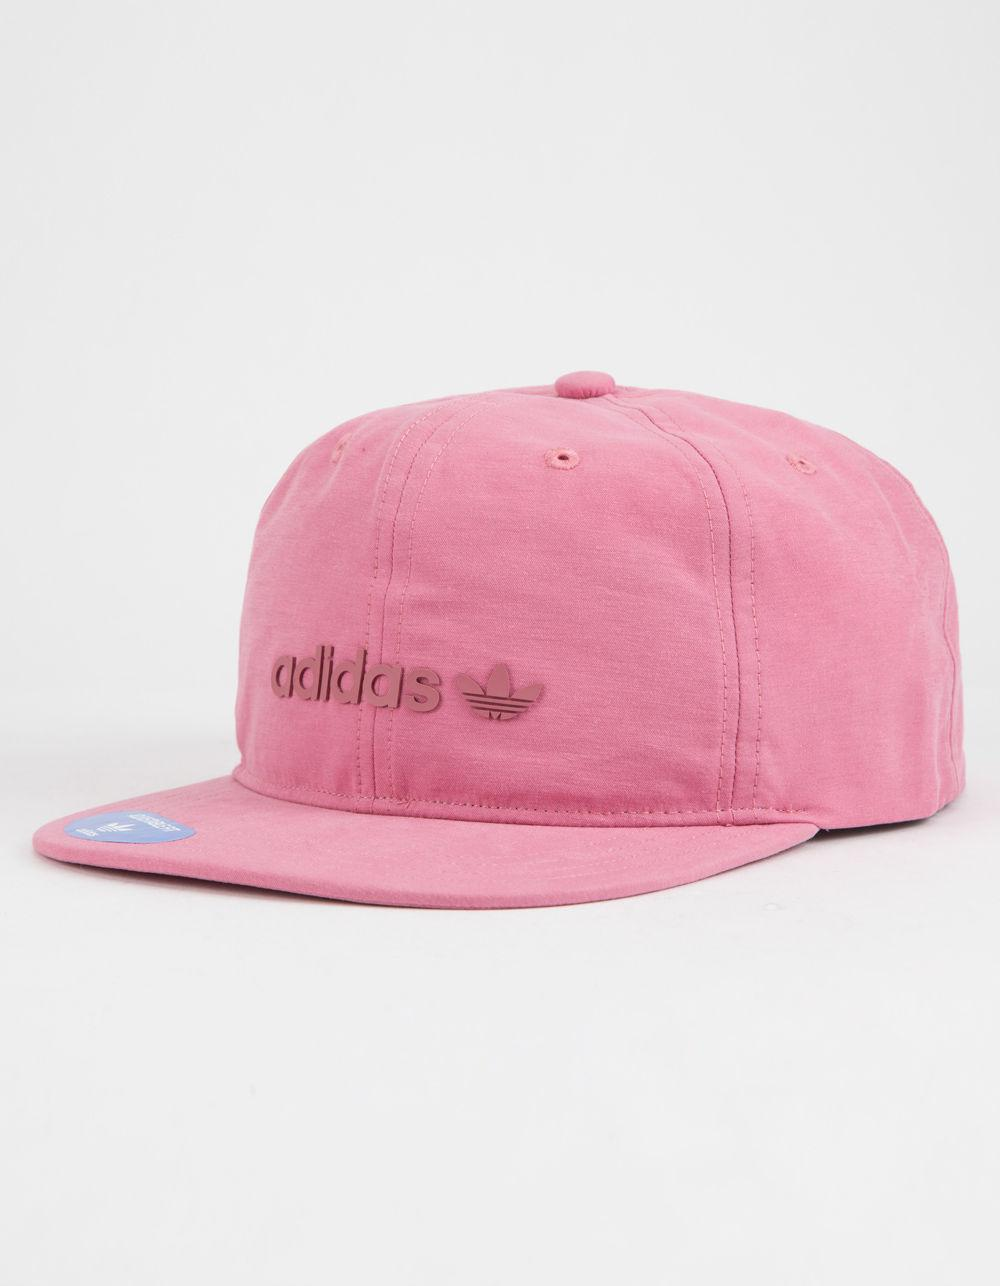 cb00371b4b923 adidas Originals Relaxed Decon Ii Pink Mens Snapback Hat in Pink for ...